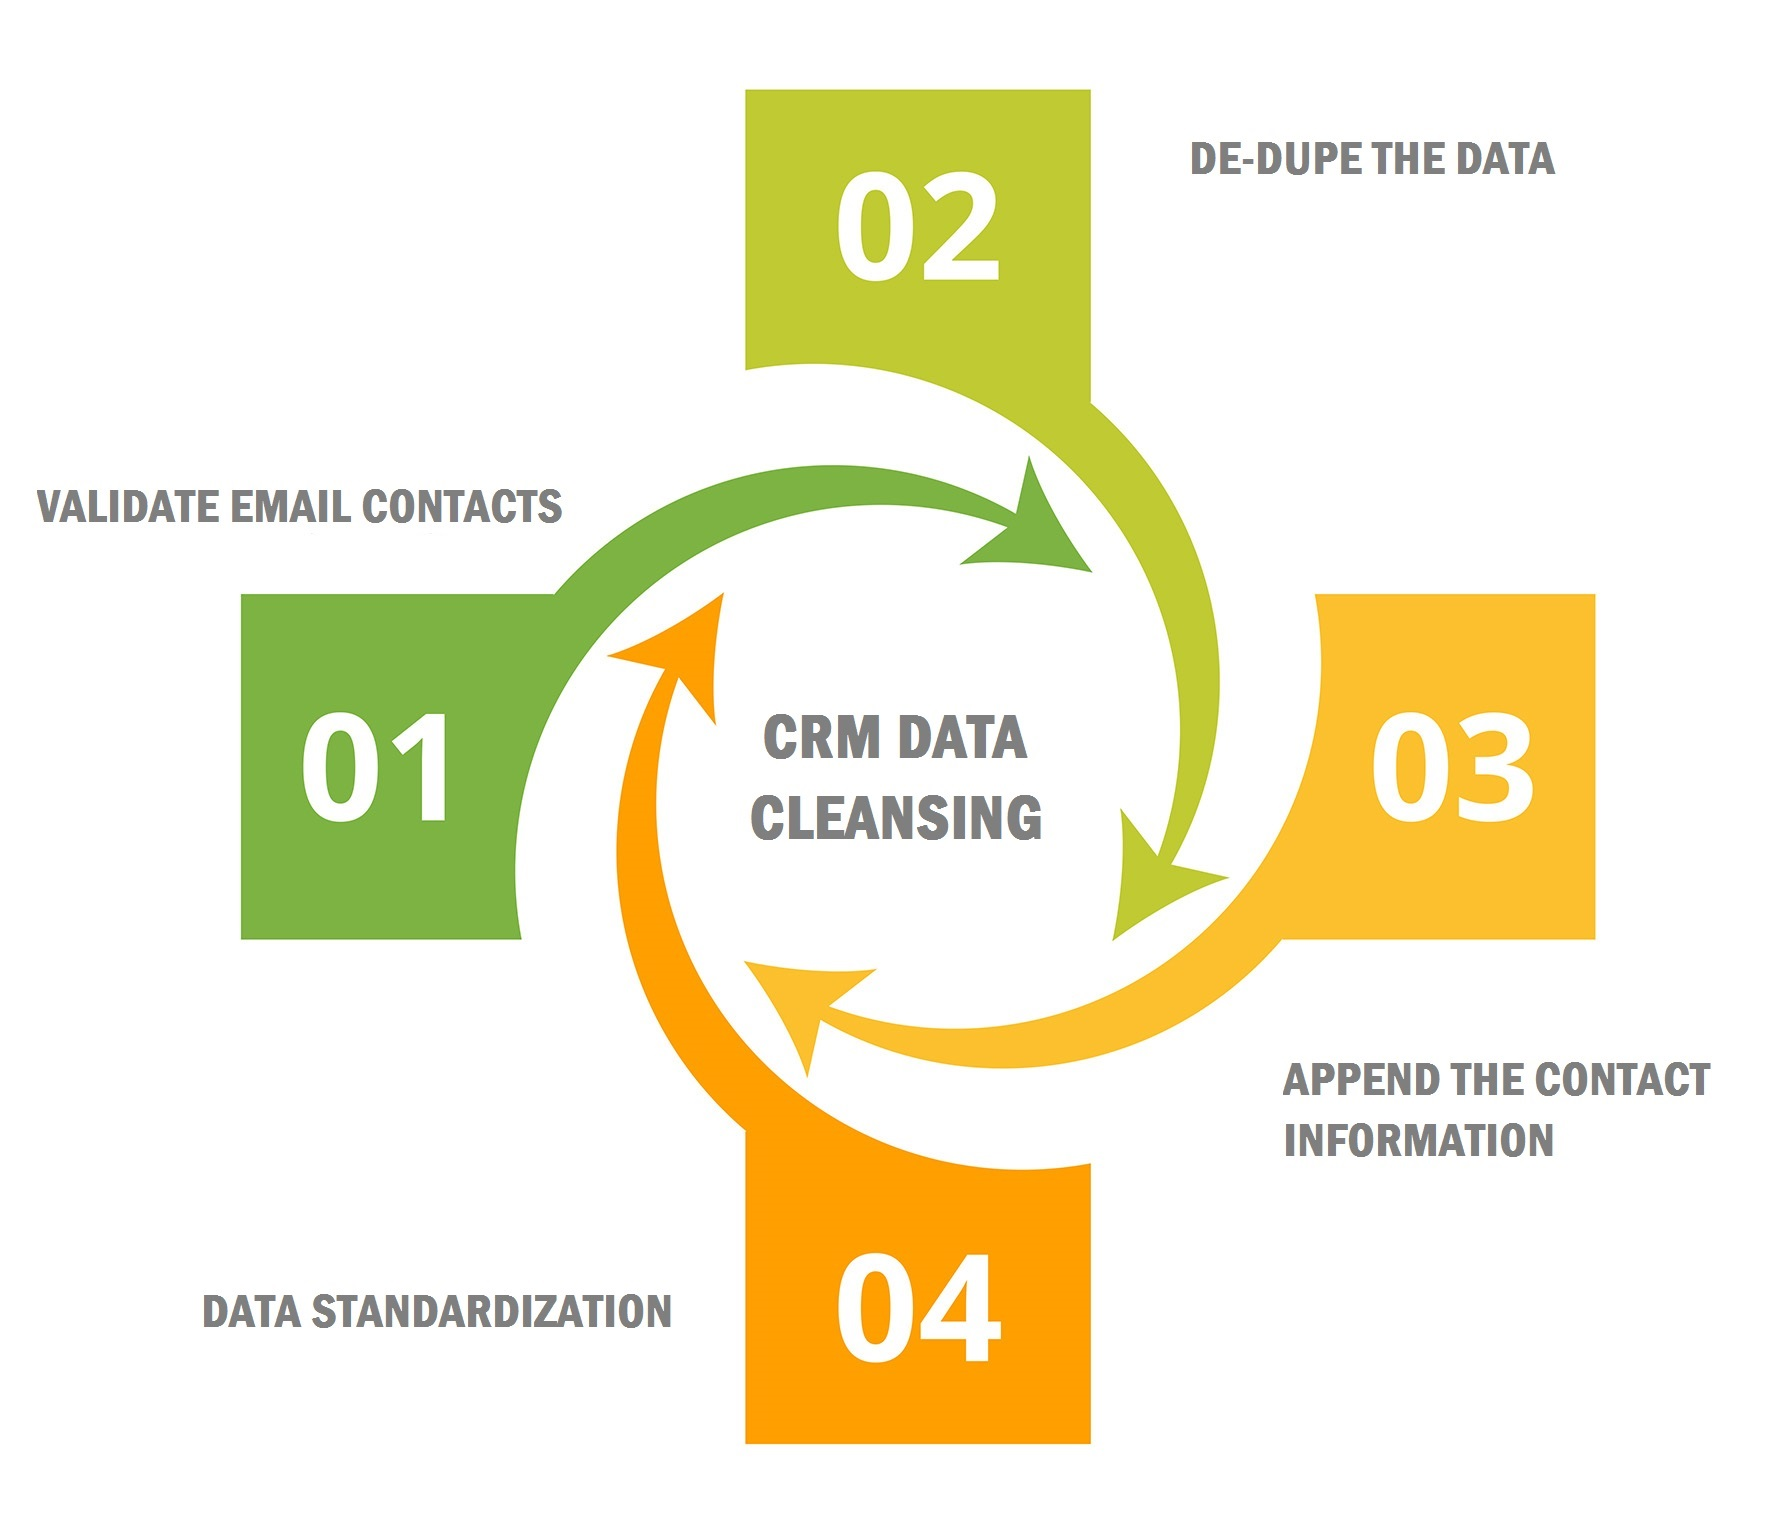 CRM Data Cleansing